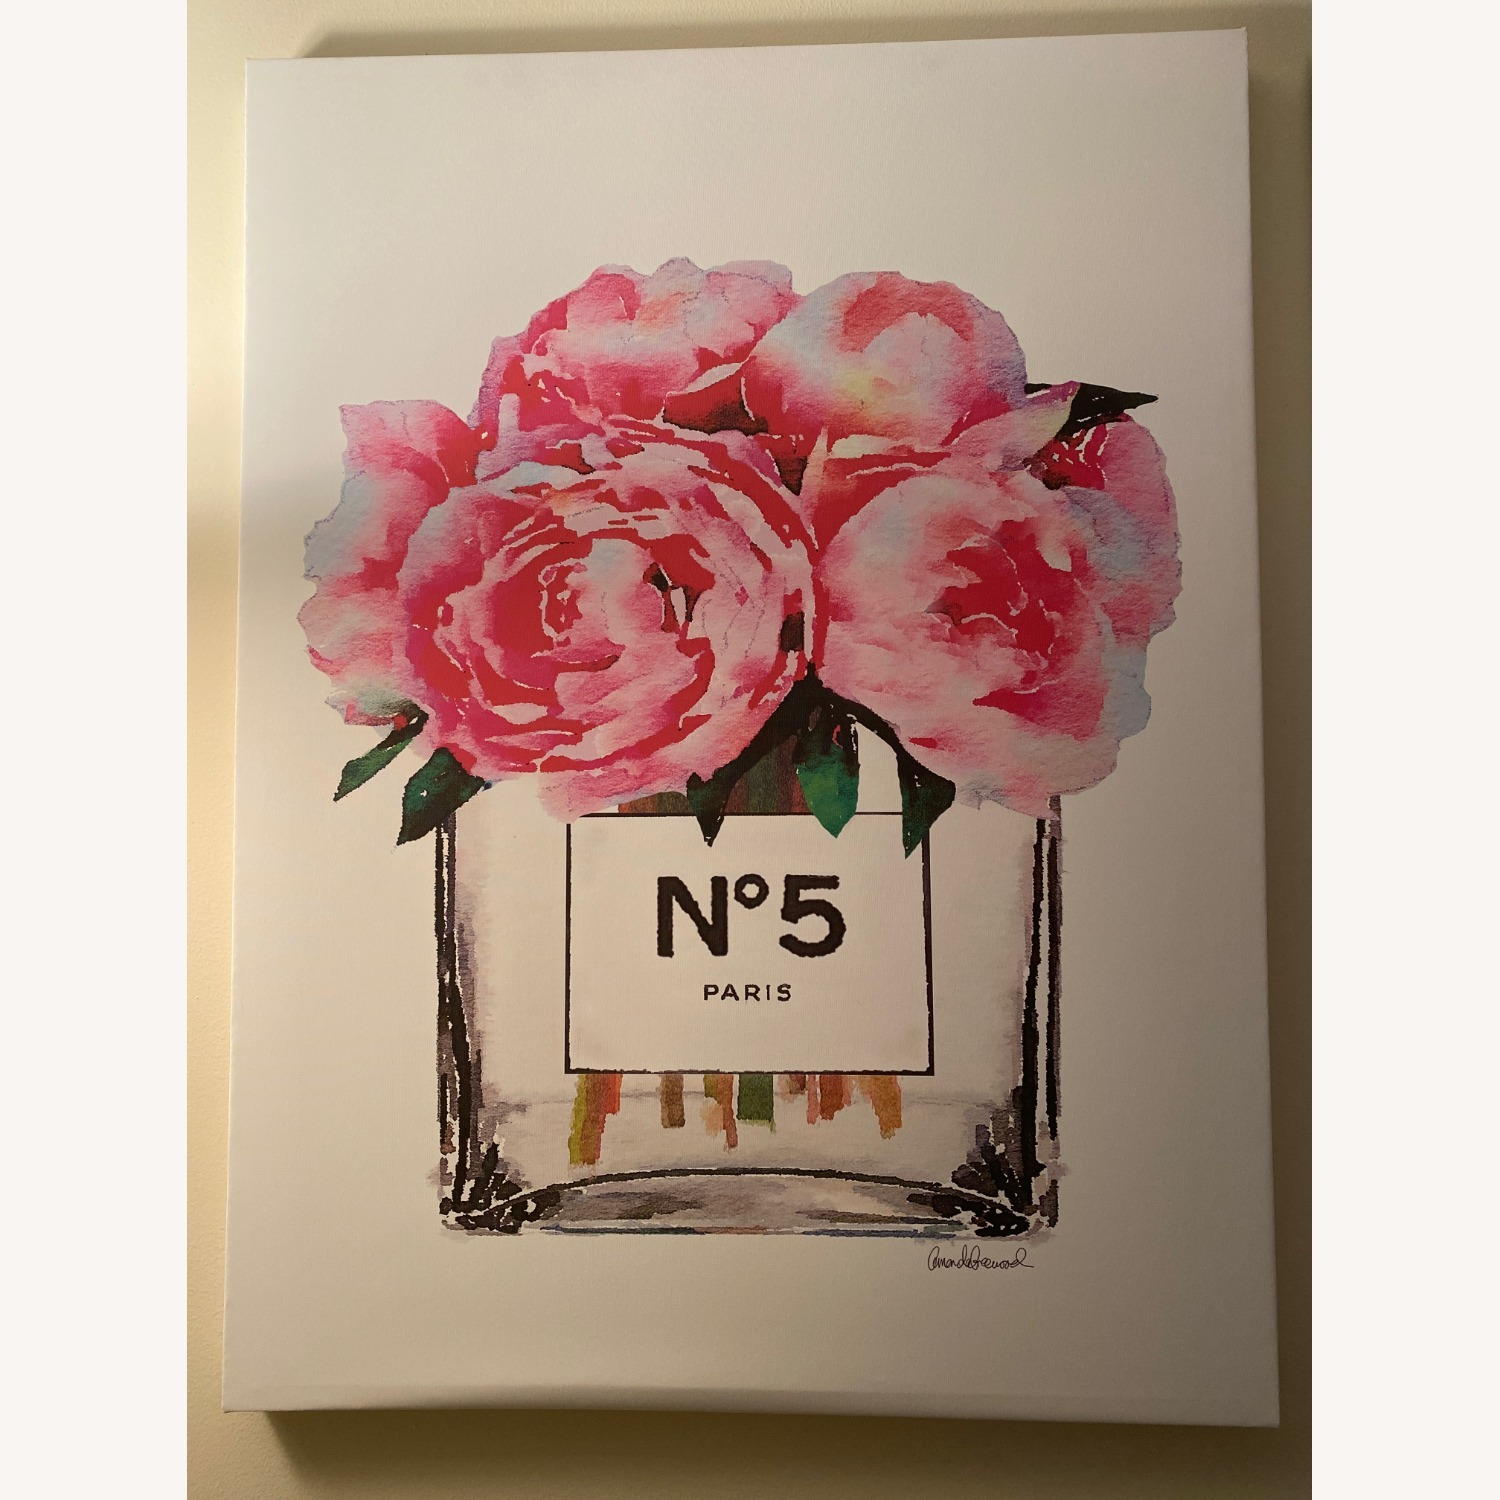 Chanel Perfume Canvas Painting - image-2